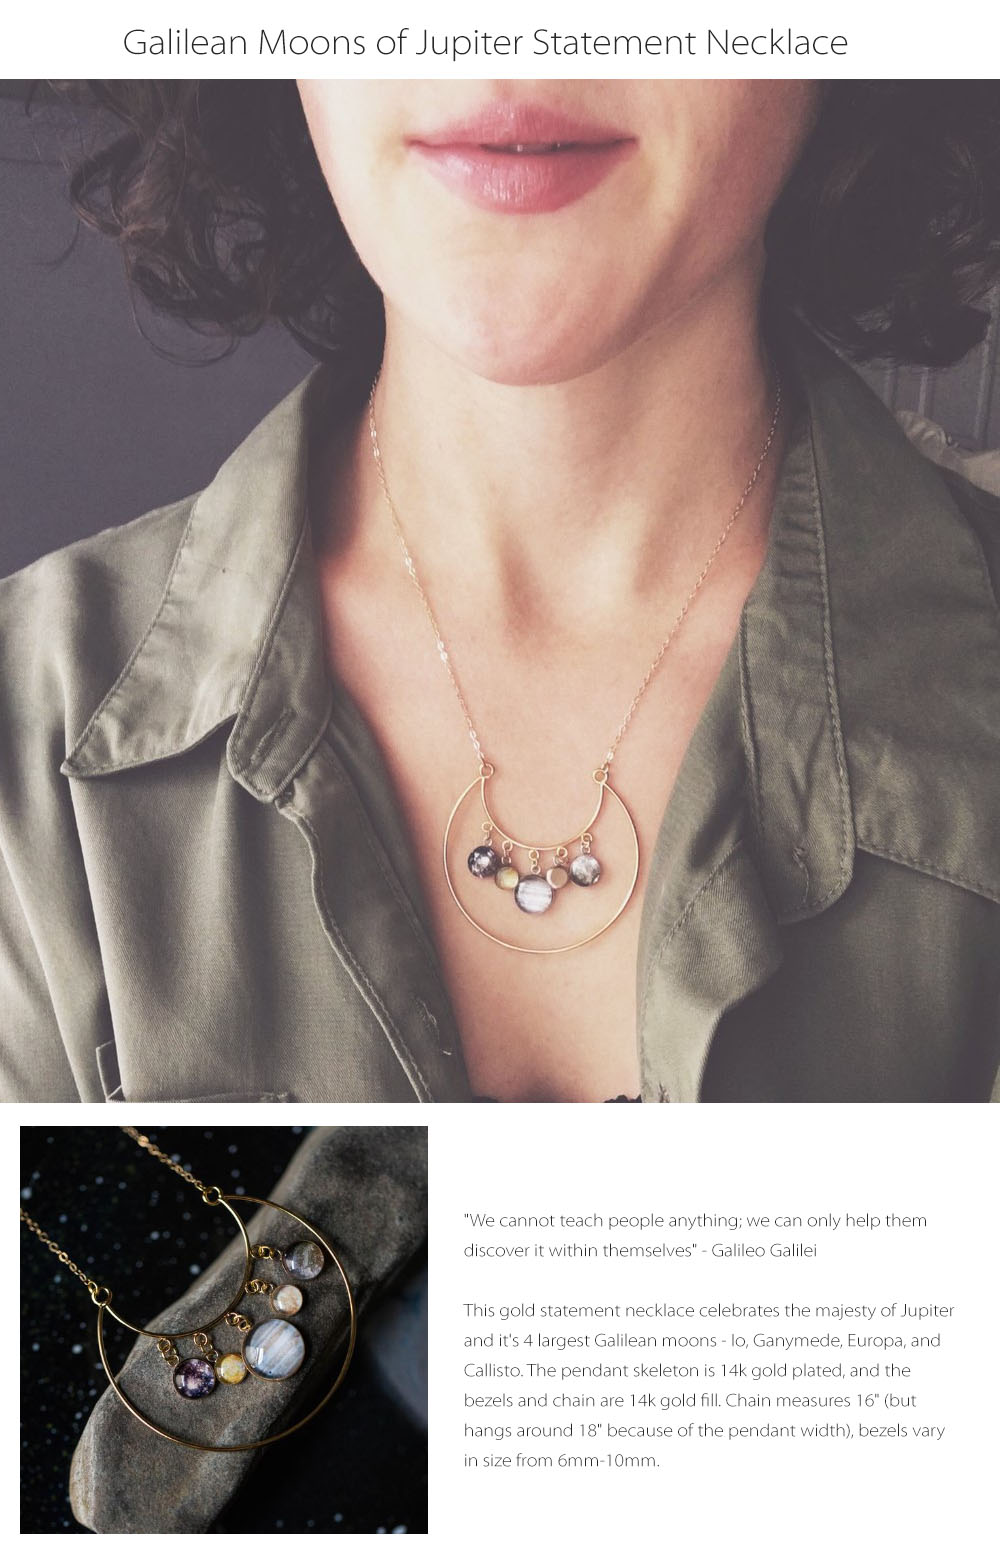 Galilean Moons of Jupiter Statement Necklace 14K Gold Necklace